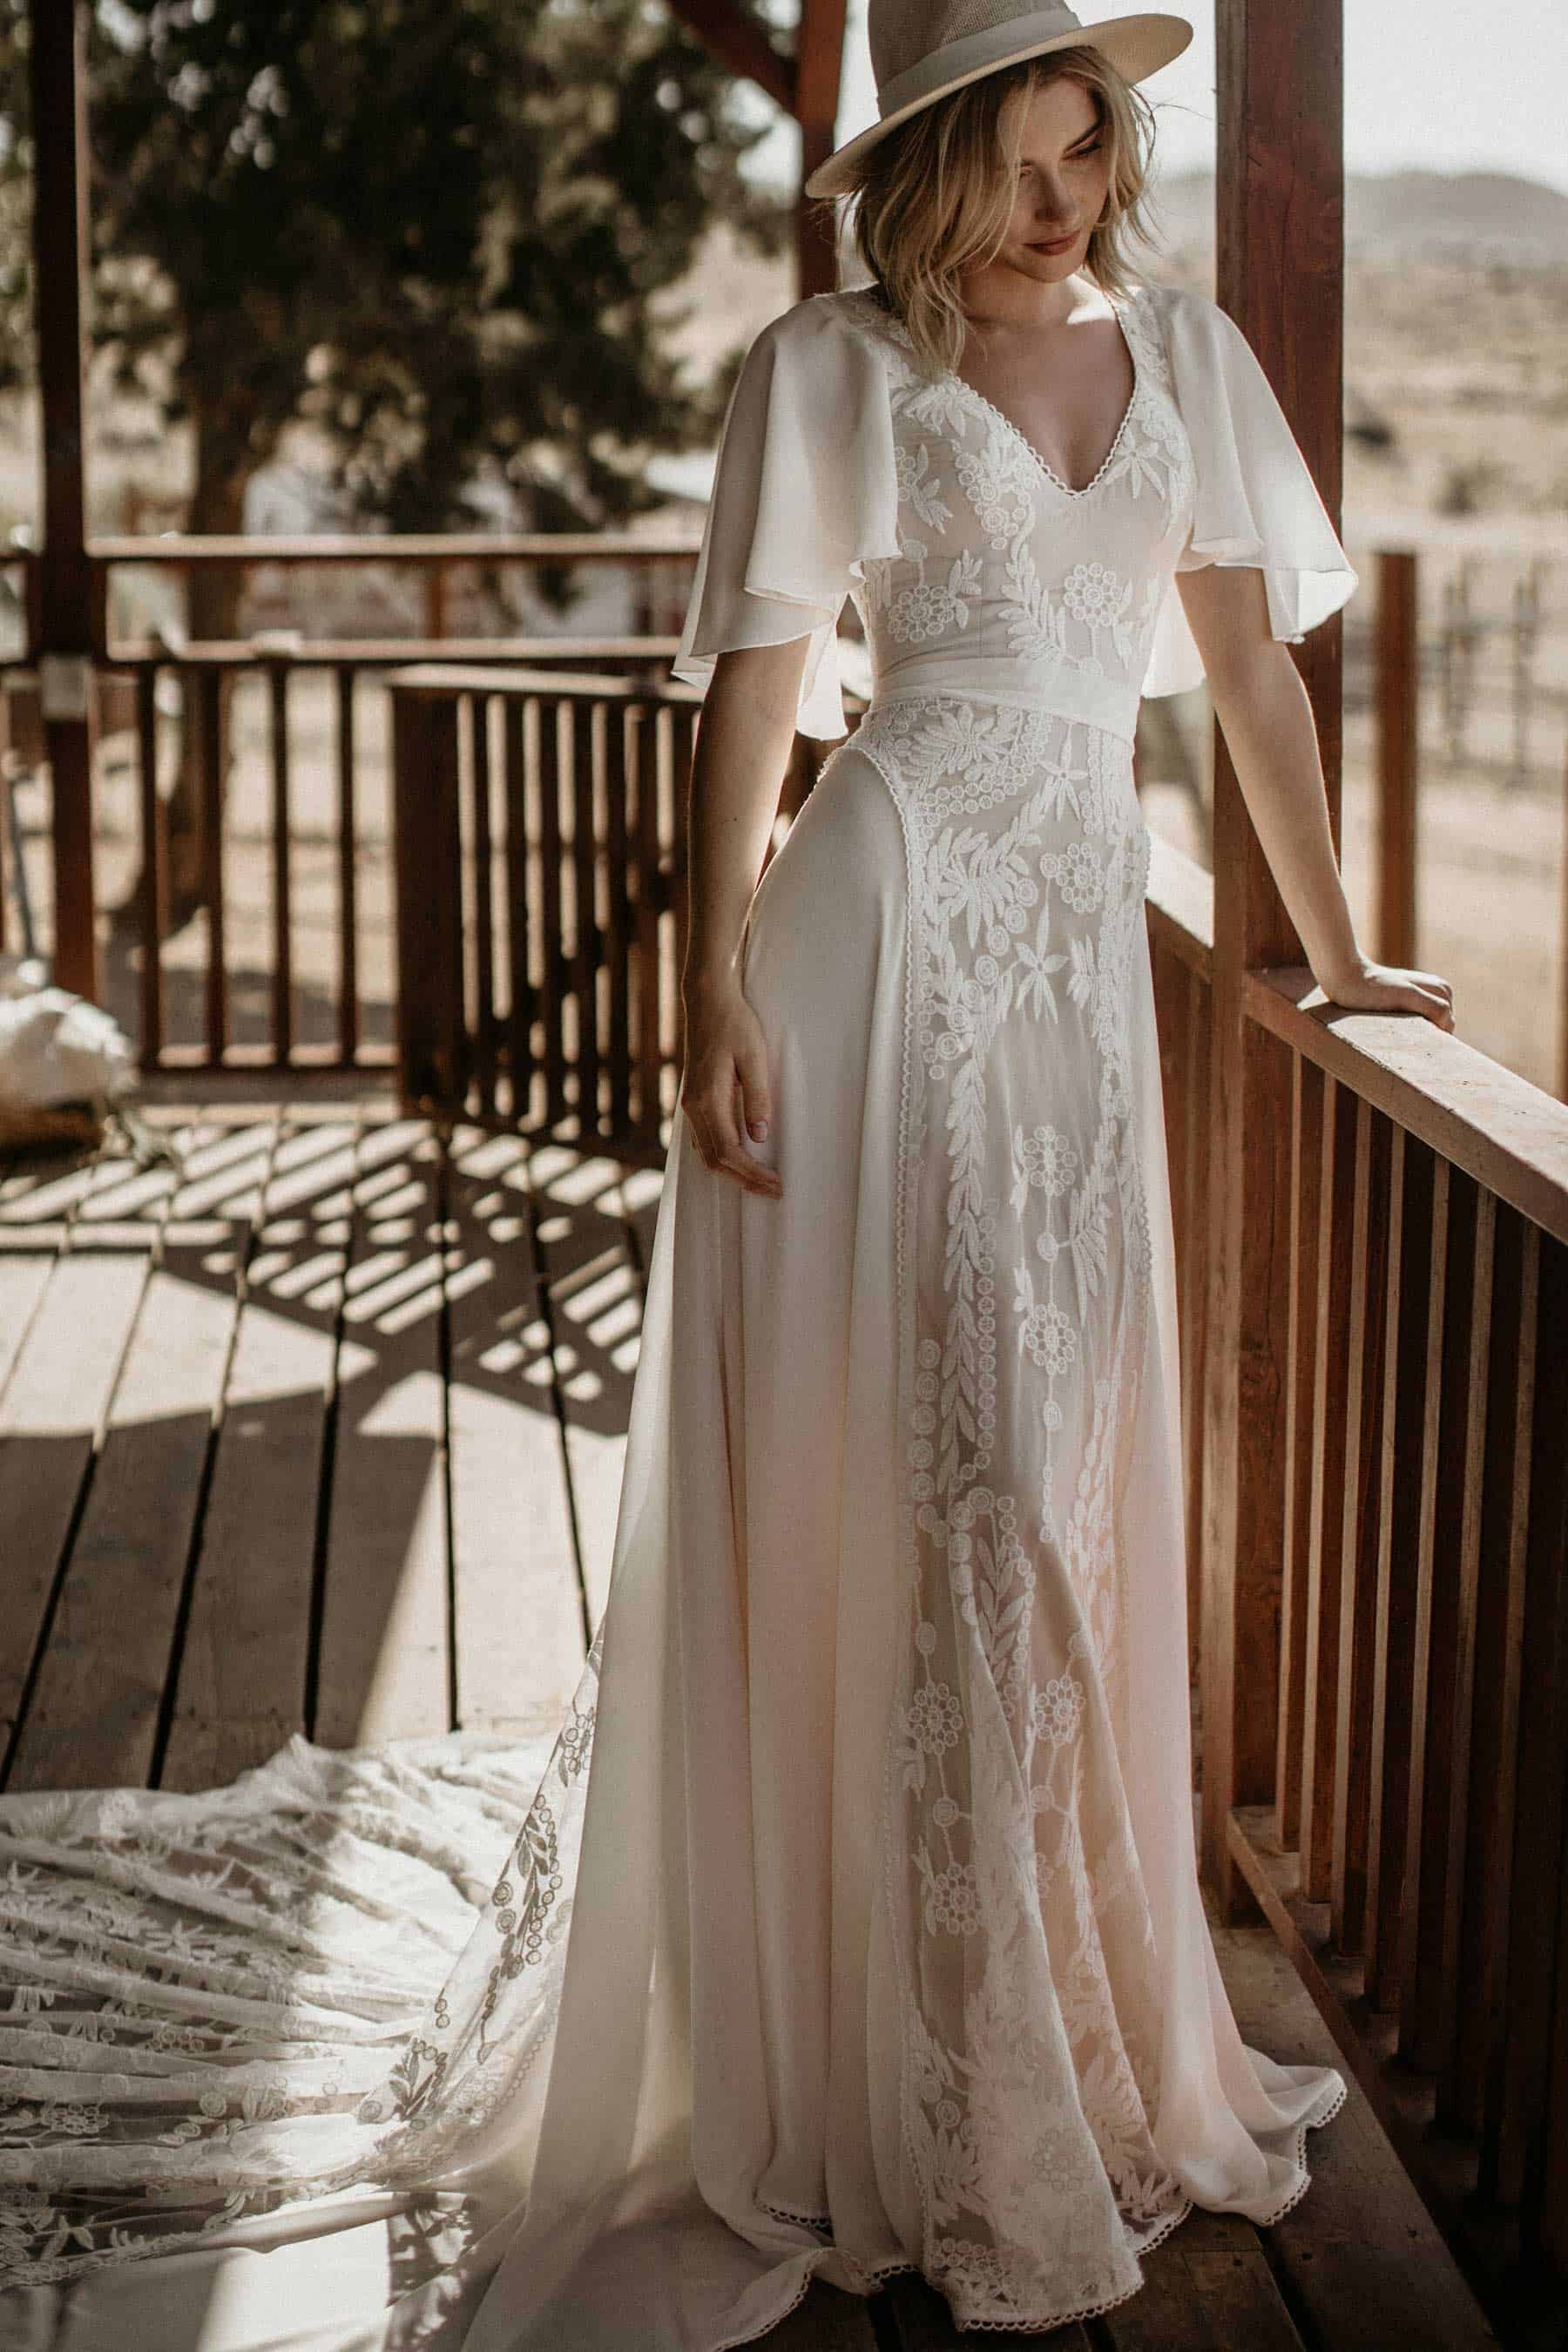 indie bride in cape-sleeve wedding dress and hat